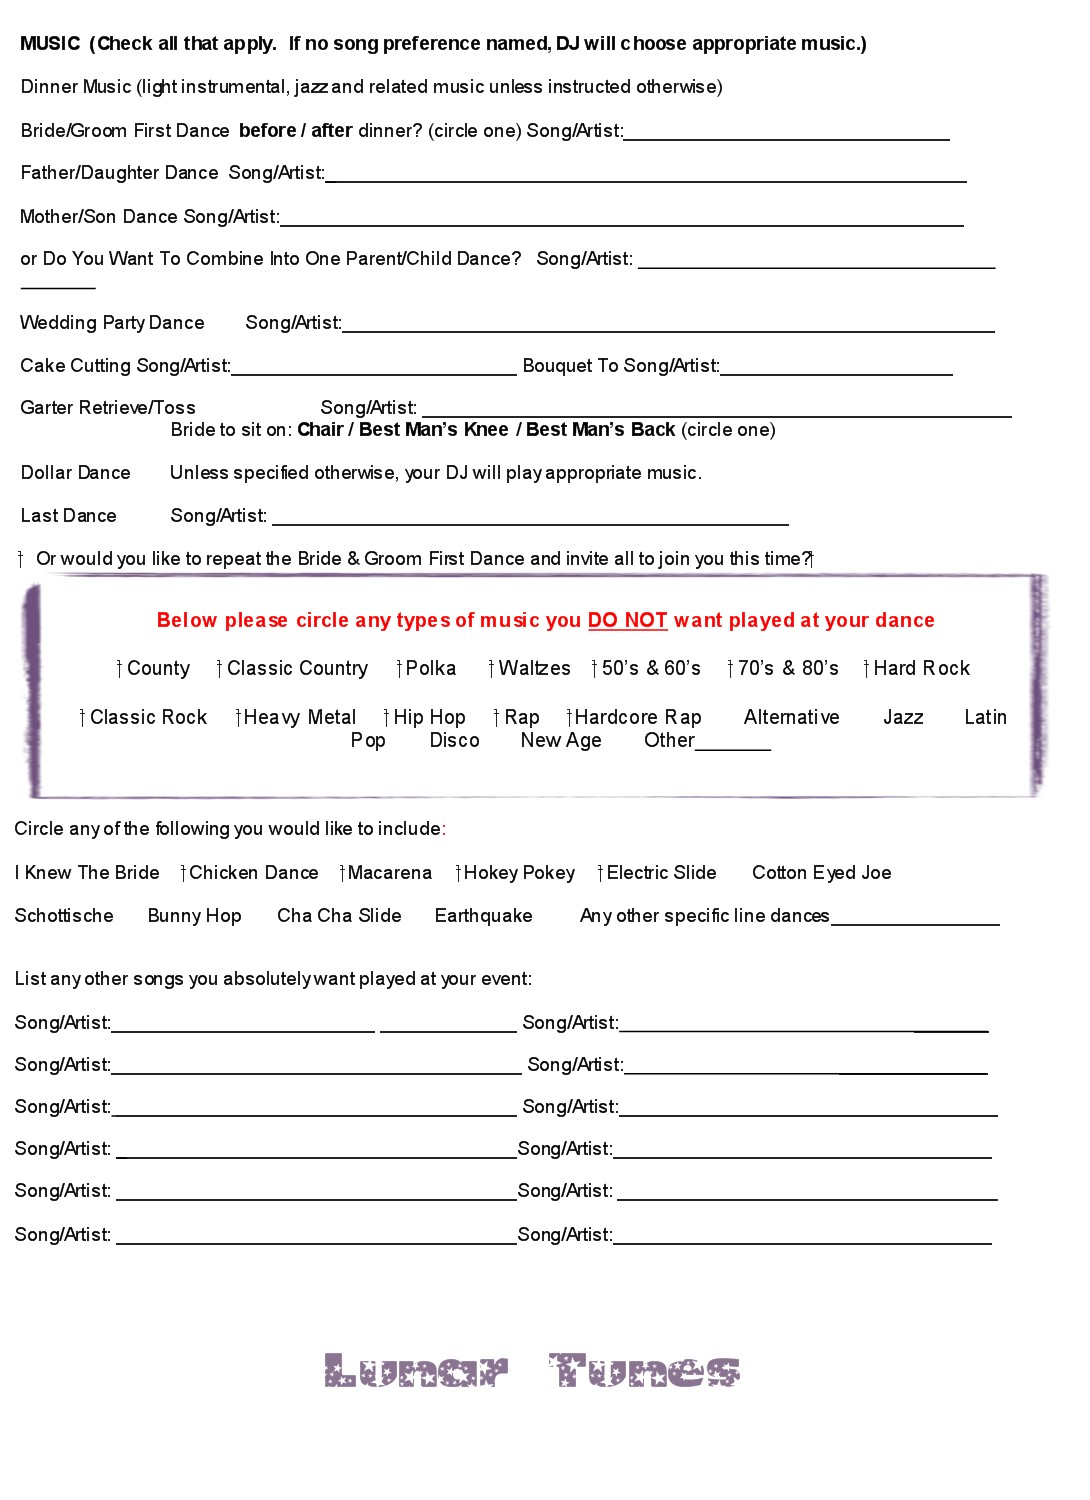 Dj contracts dj contract dj business contract template for Mobile dj contract template